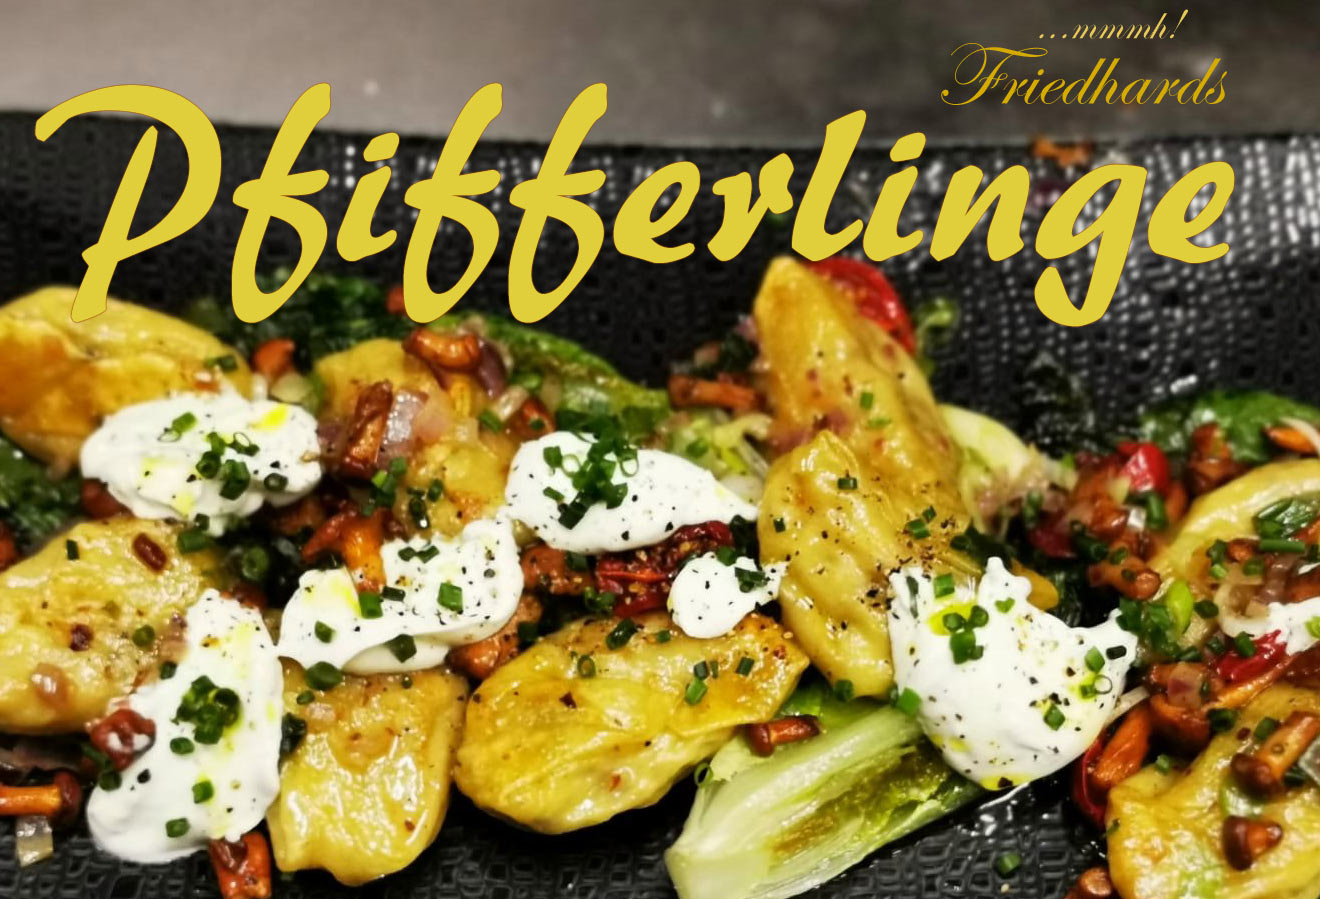 Pfifferlingszeit im Restaurant Friedhard´s